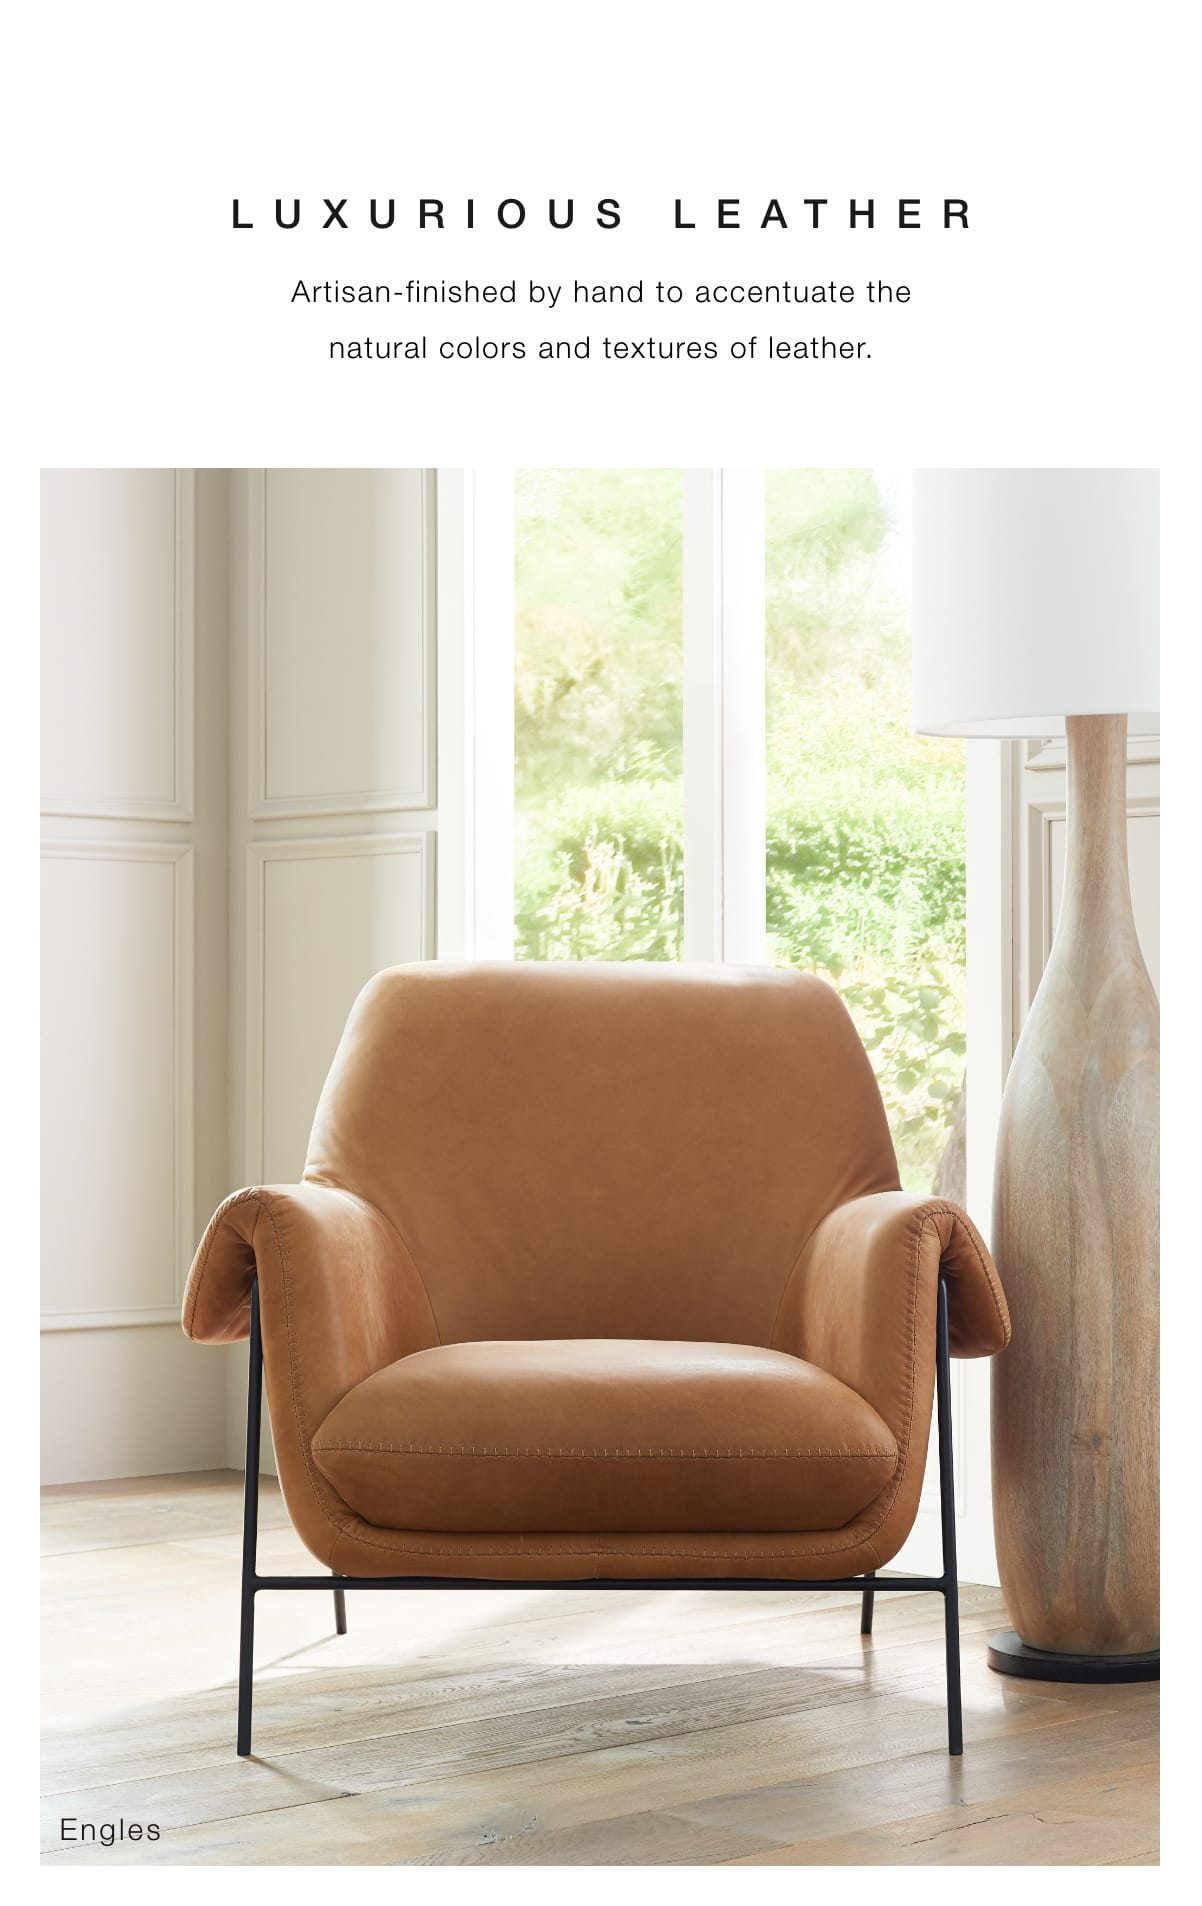 Luxurious leather chairs